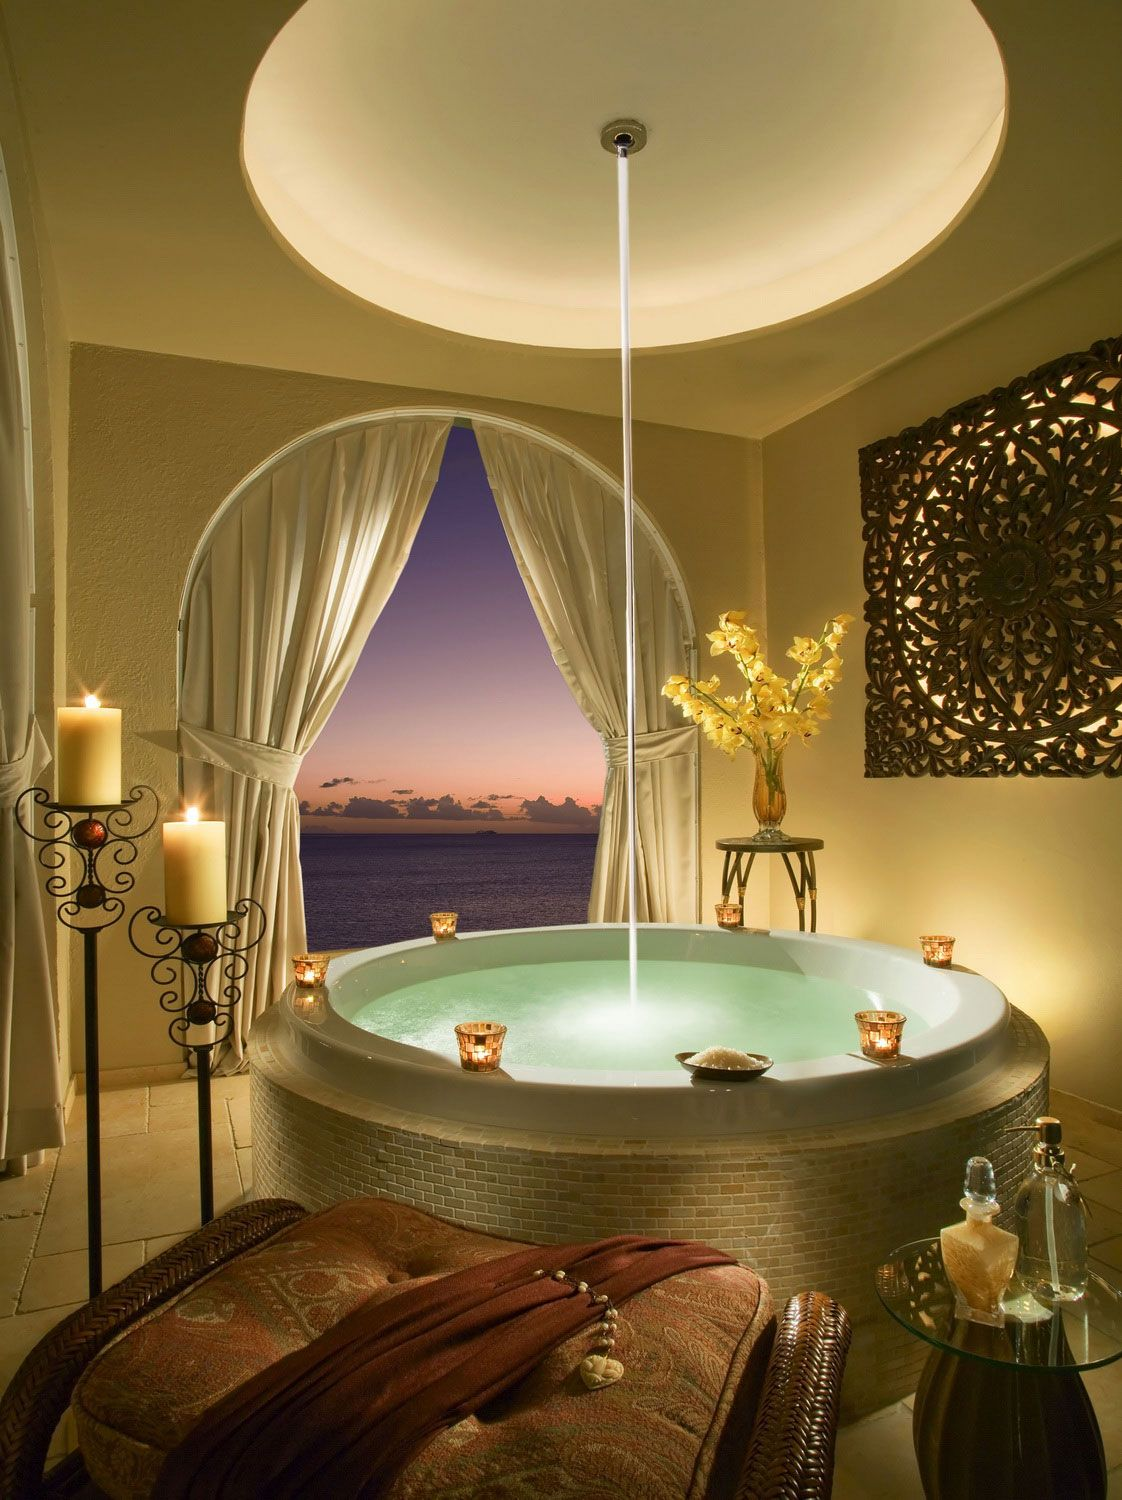 Luxury Bathtubs make Life worth Living | Bathroom Design | Pinterest ...